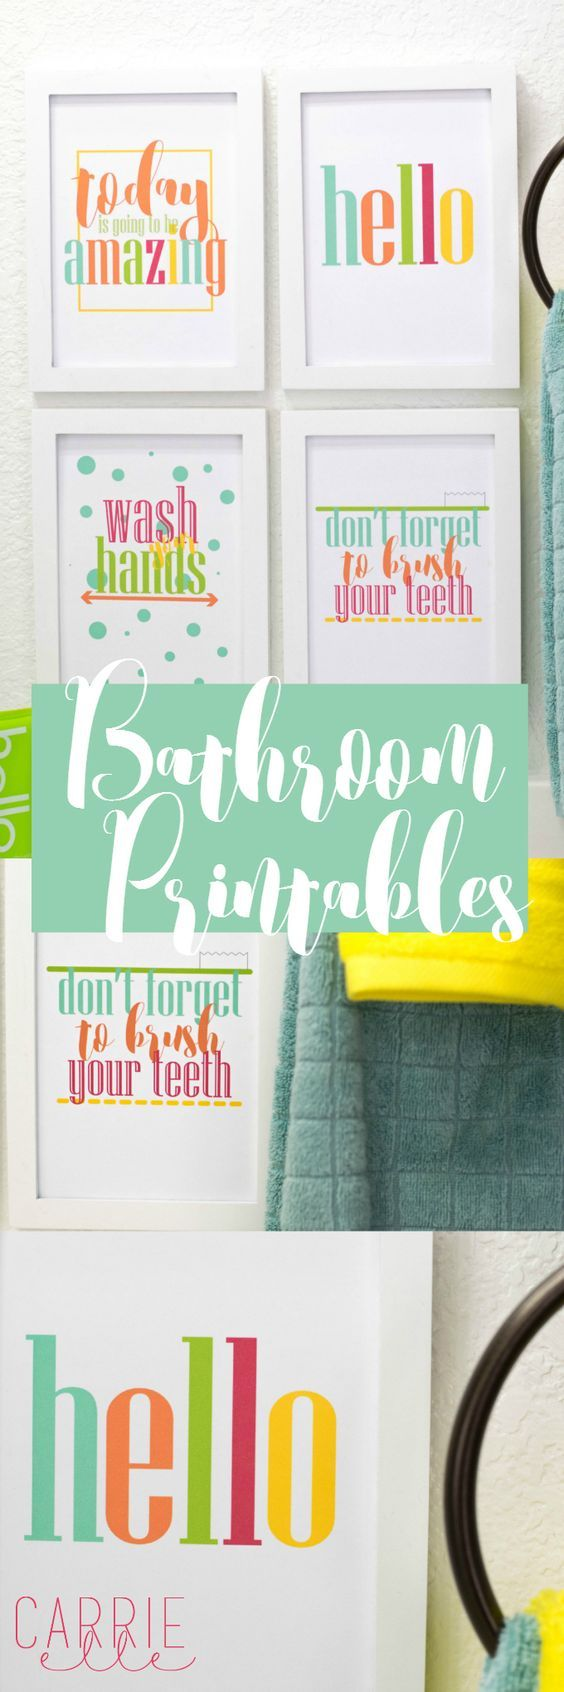 best 25 girl bathroom decor ideas on pinterest girl bathroom brighten up your bathroom with these cheerful and happy bathroom printables these are great for